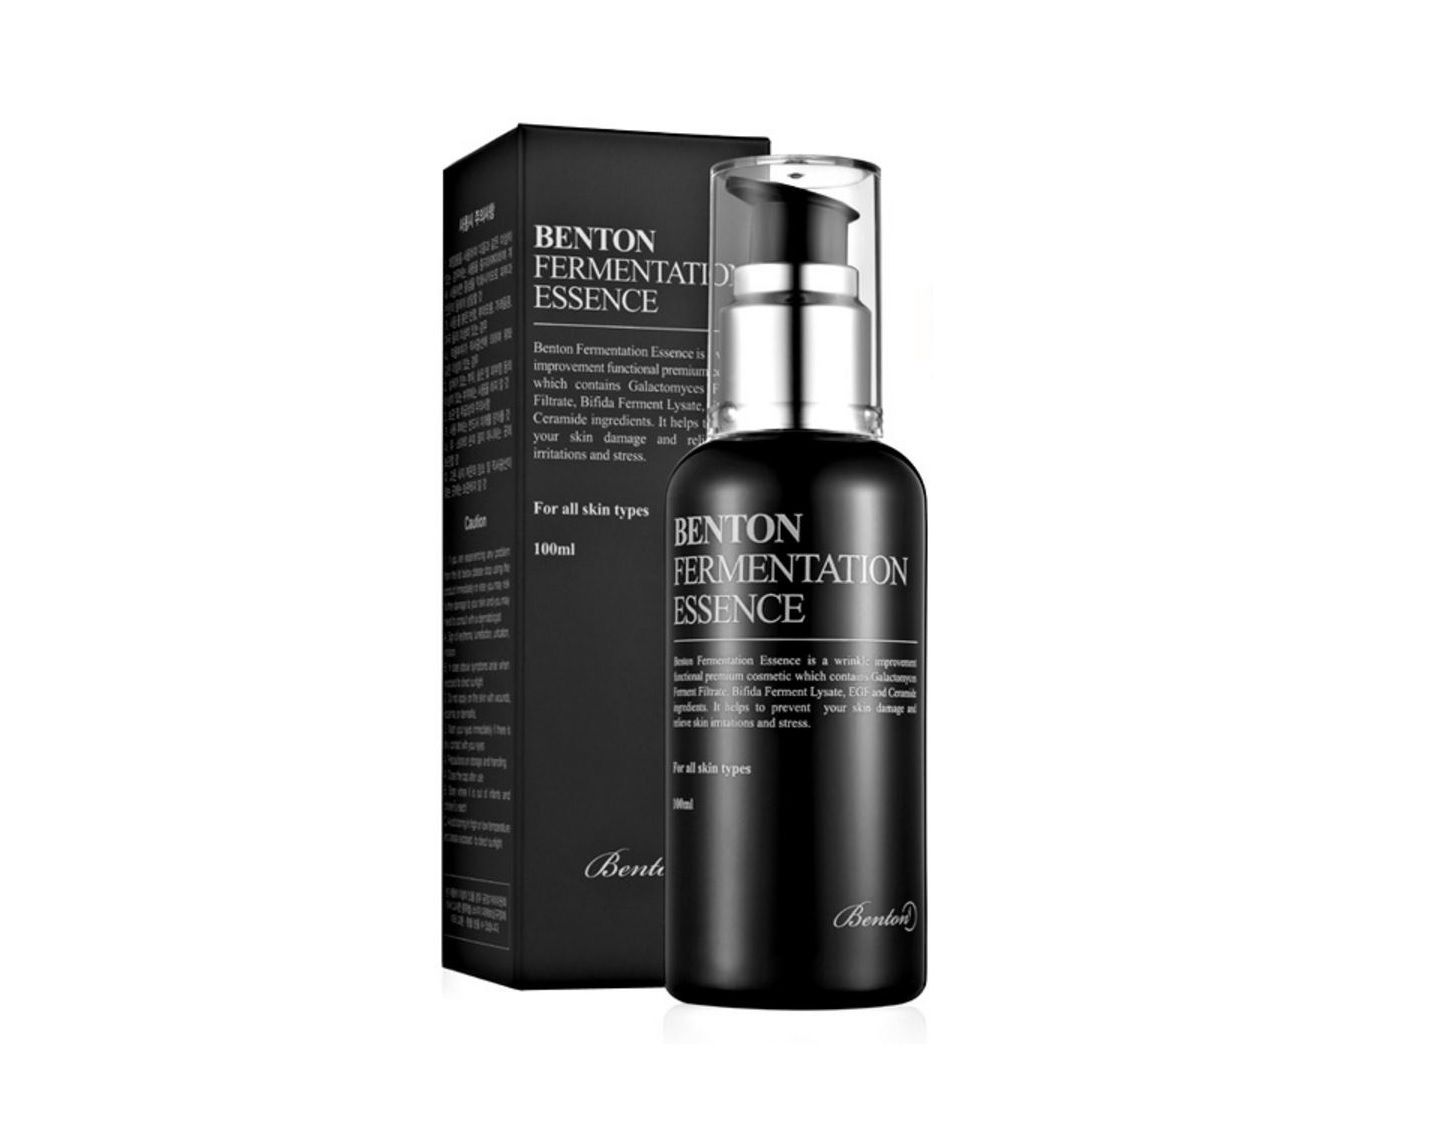 BENTON Fermentation Essence 100ml Face Essence Facial Skin Care Alleviate Winkles Moisturizing Cream Whitening Serum Remove Acne in essence 100ml